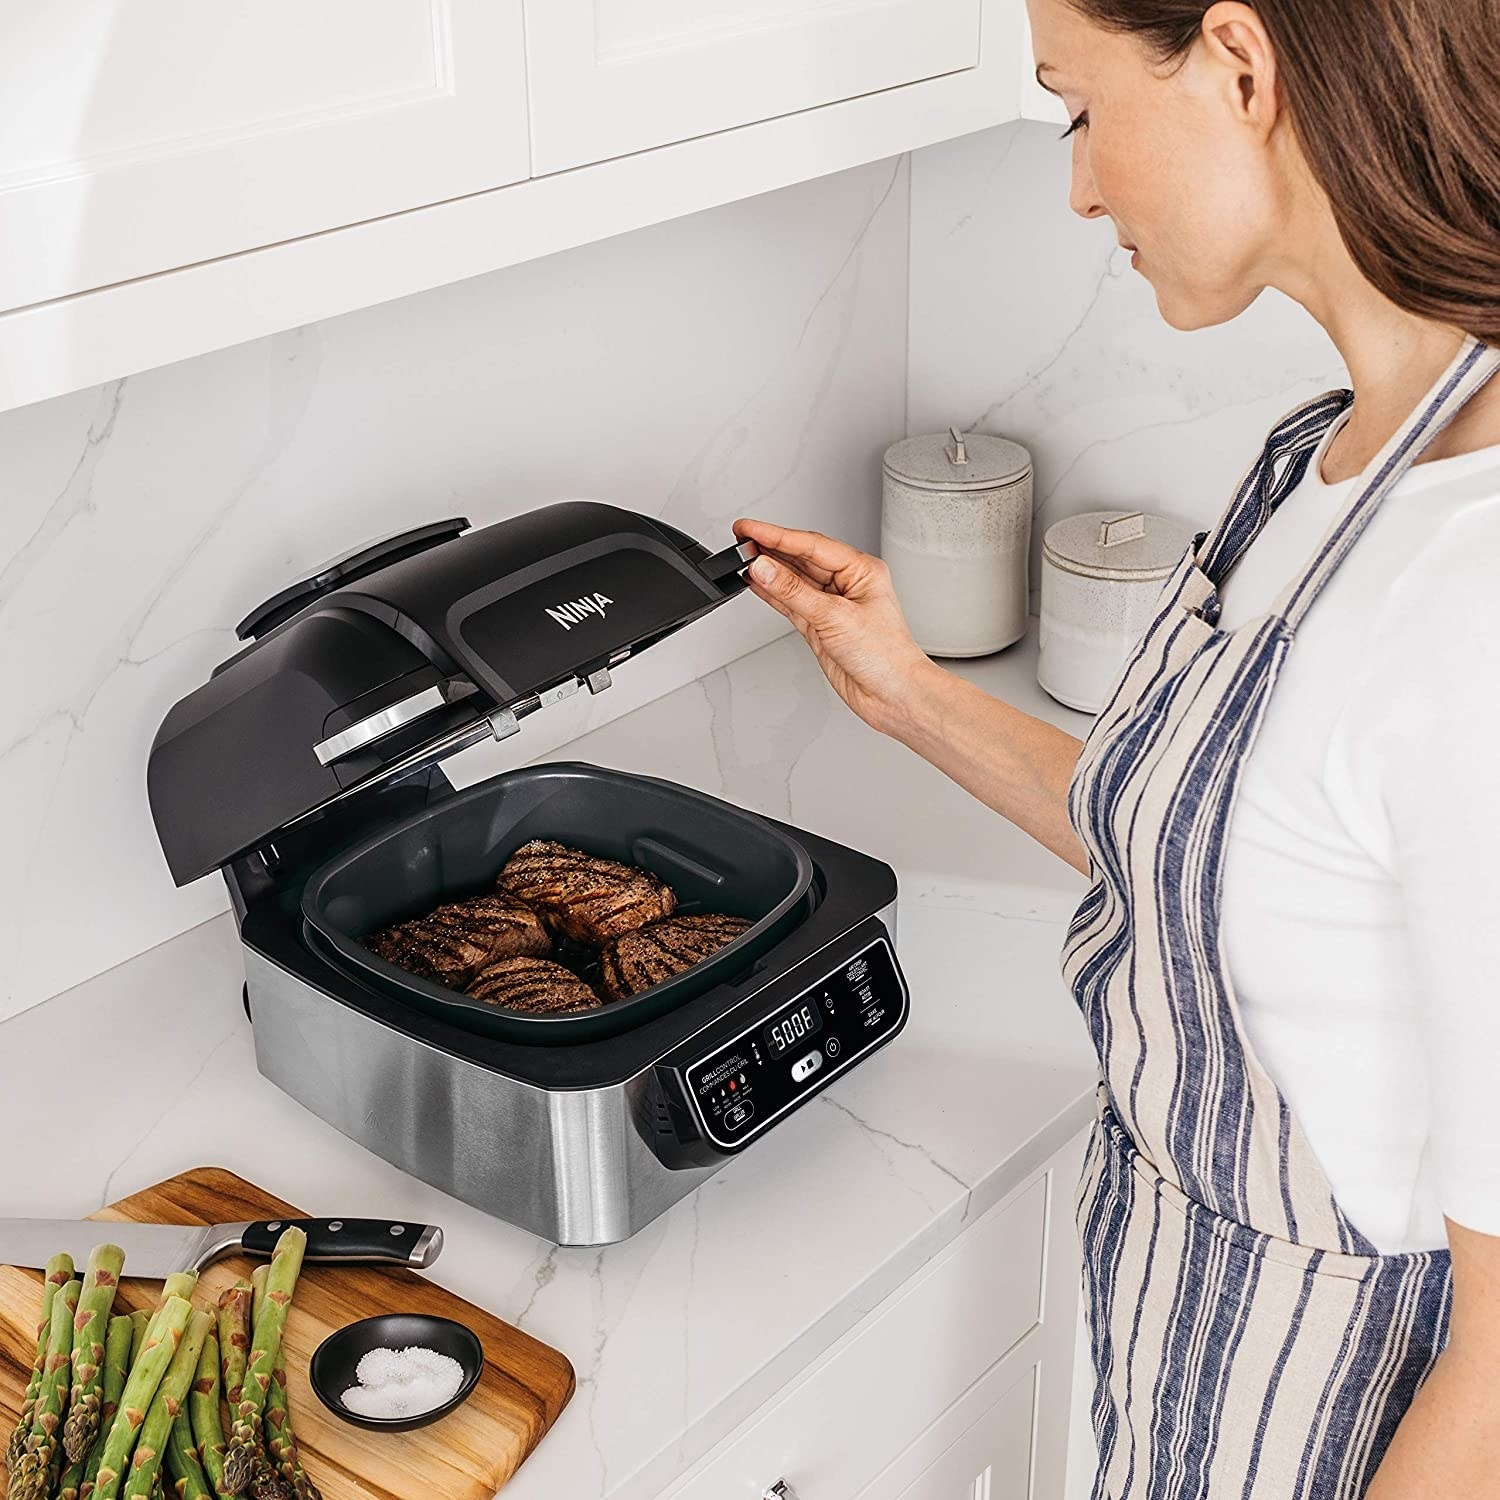 A NInji foodie grill with steaks cooking in it